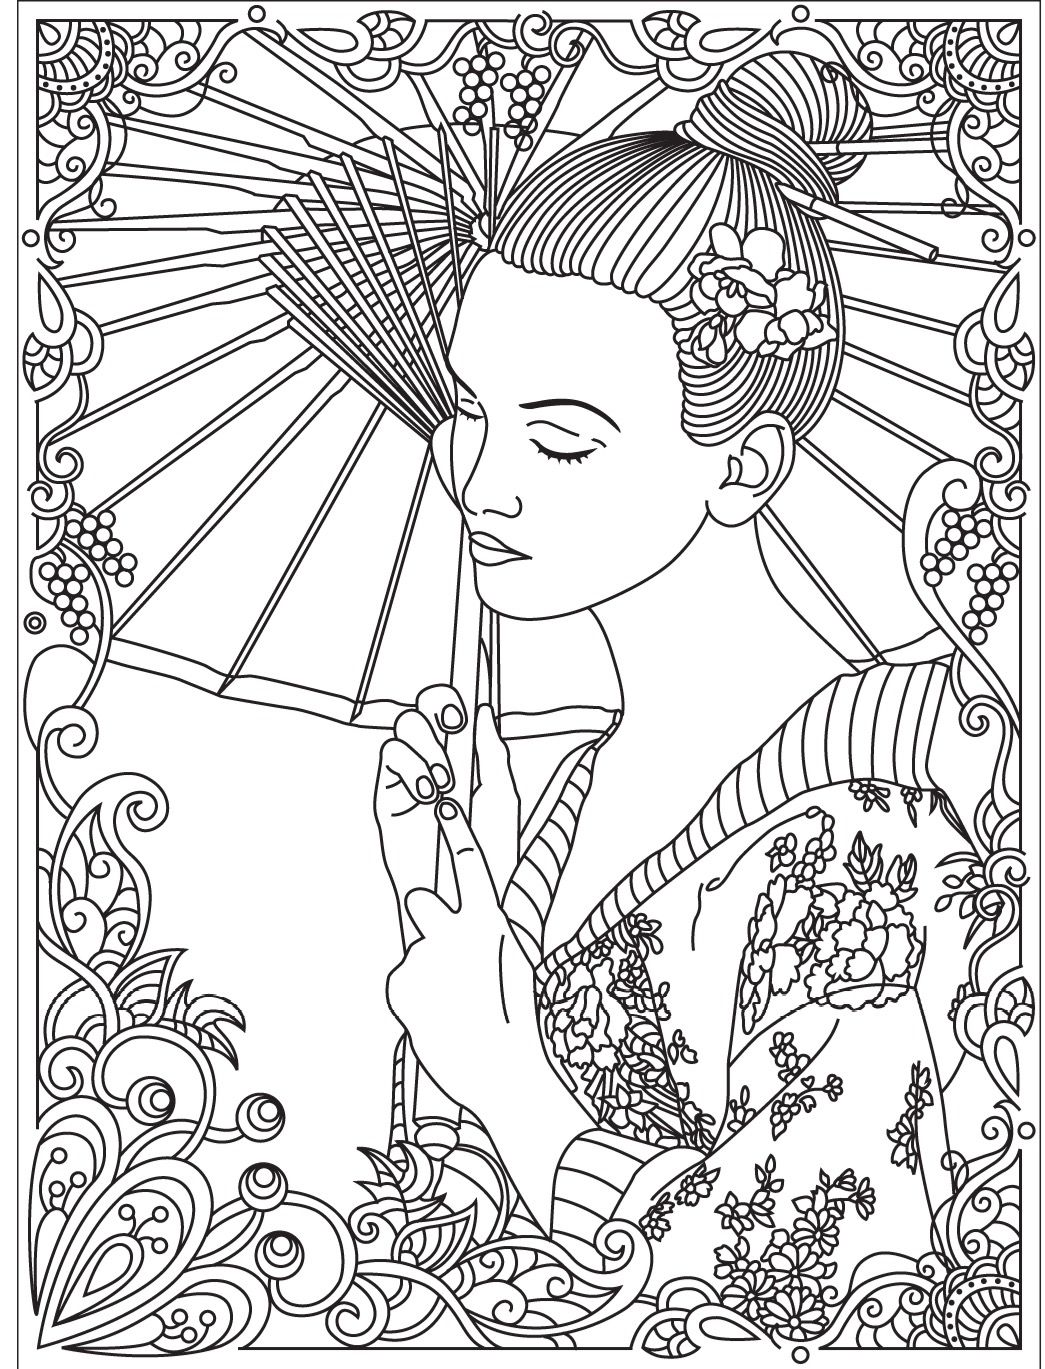 Japan Geisha Colorish Coloring Book For Adults Mandala Relax By Goodsofttech Detailed Coloring Pages Coloring Books Coloring Pages